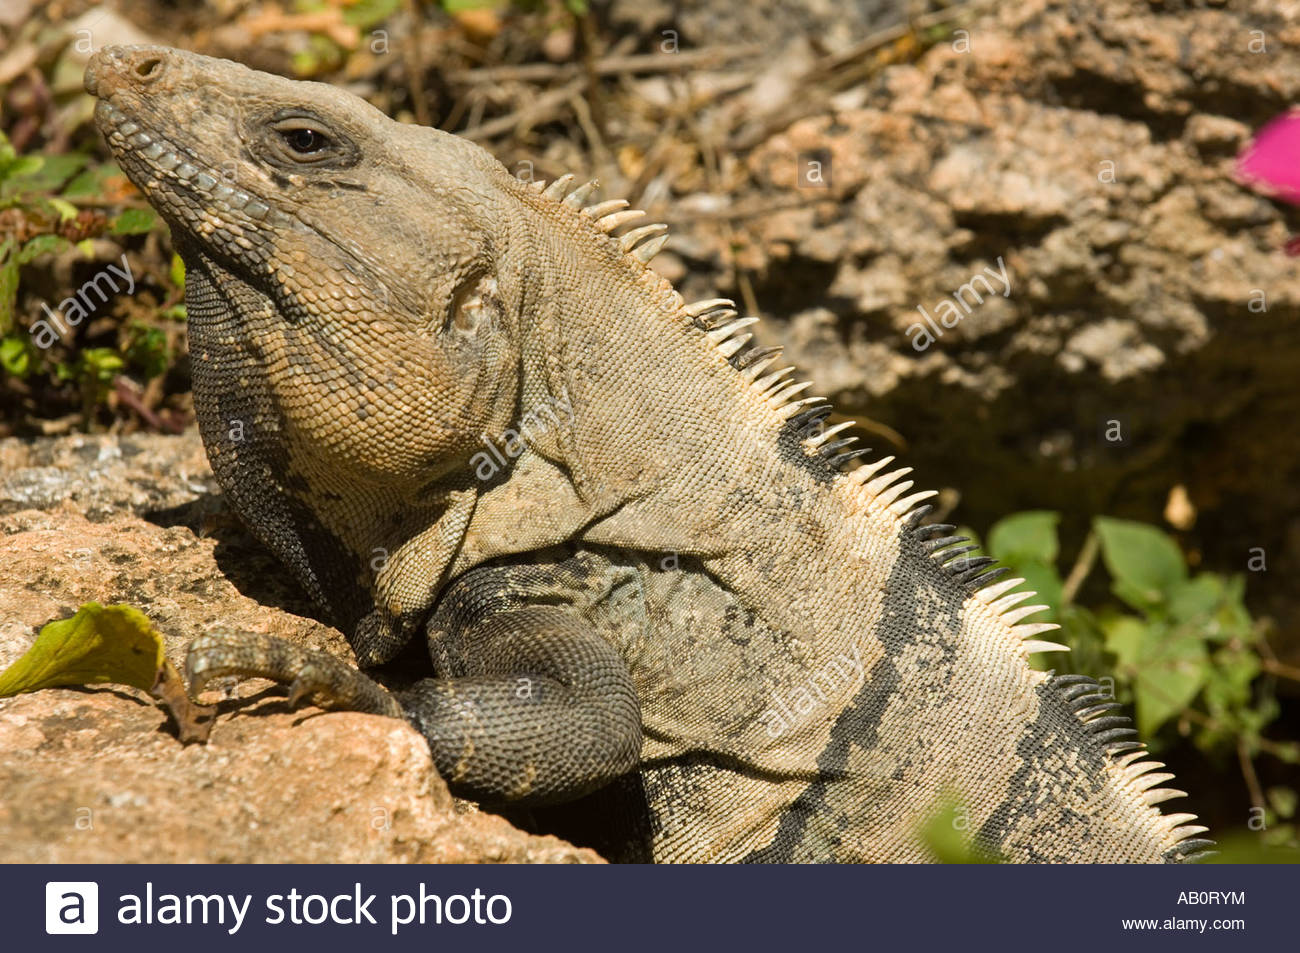 Black Spiny Tailed Iguana svg #13, Download drawings